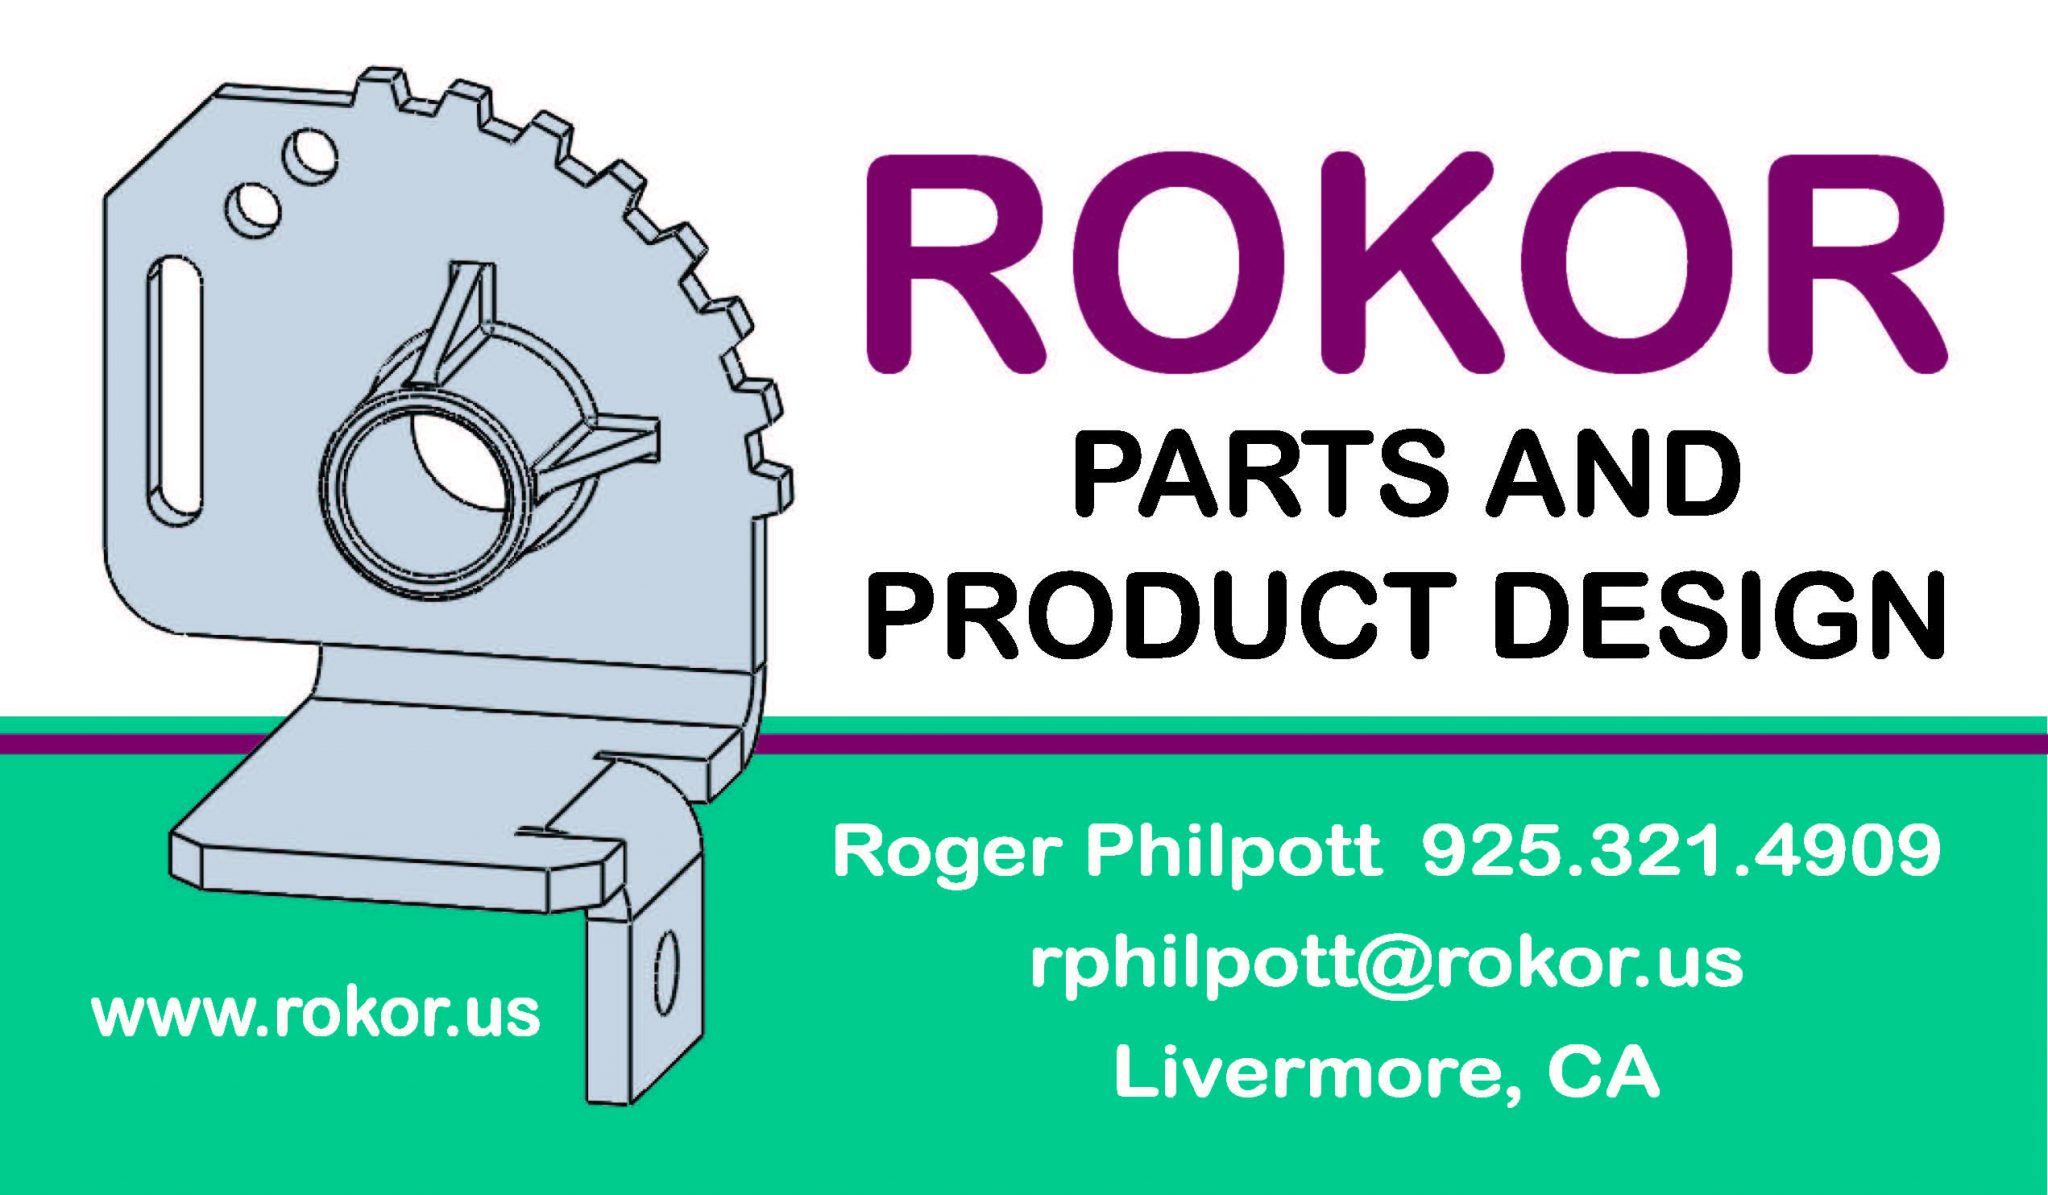 ROKOR Parts & Product Design